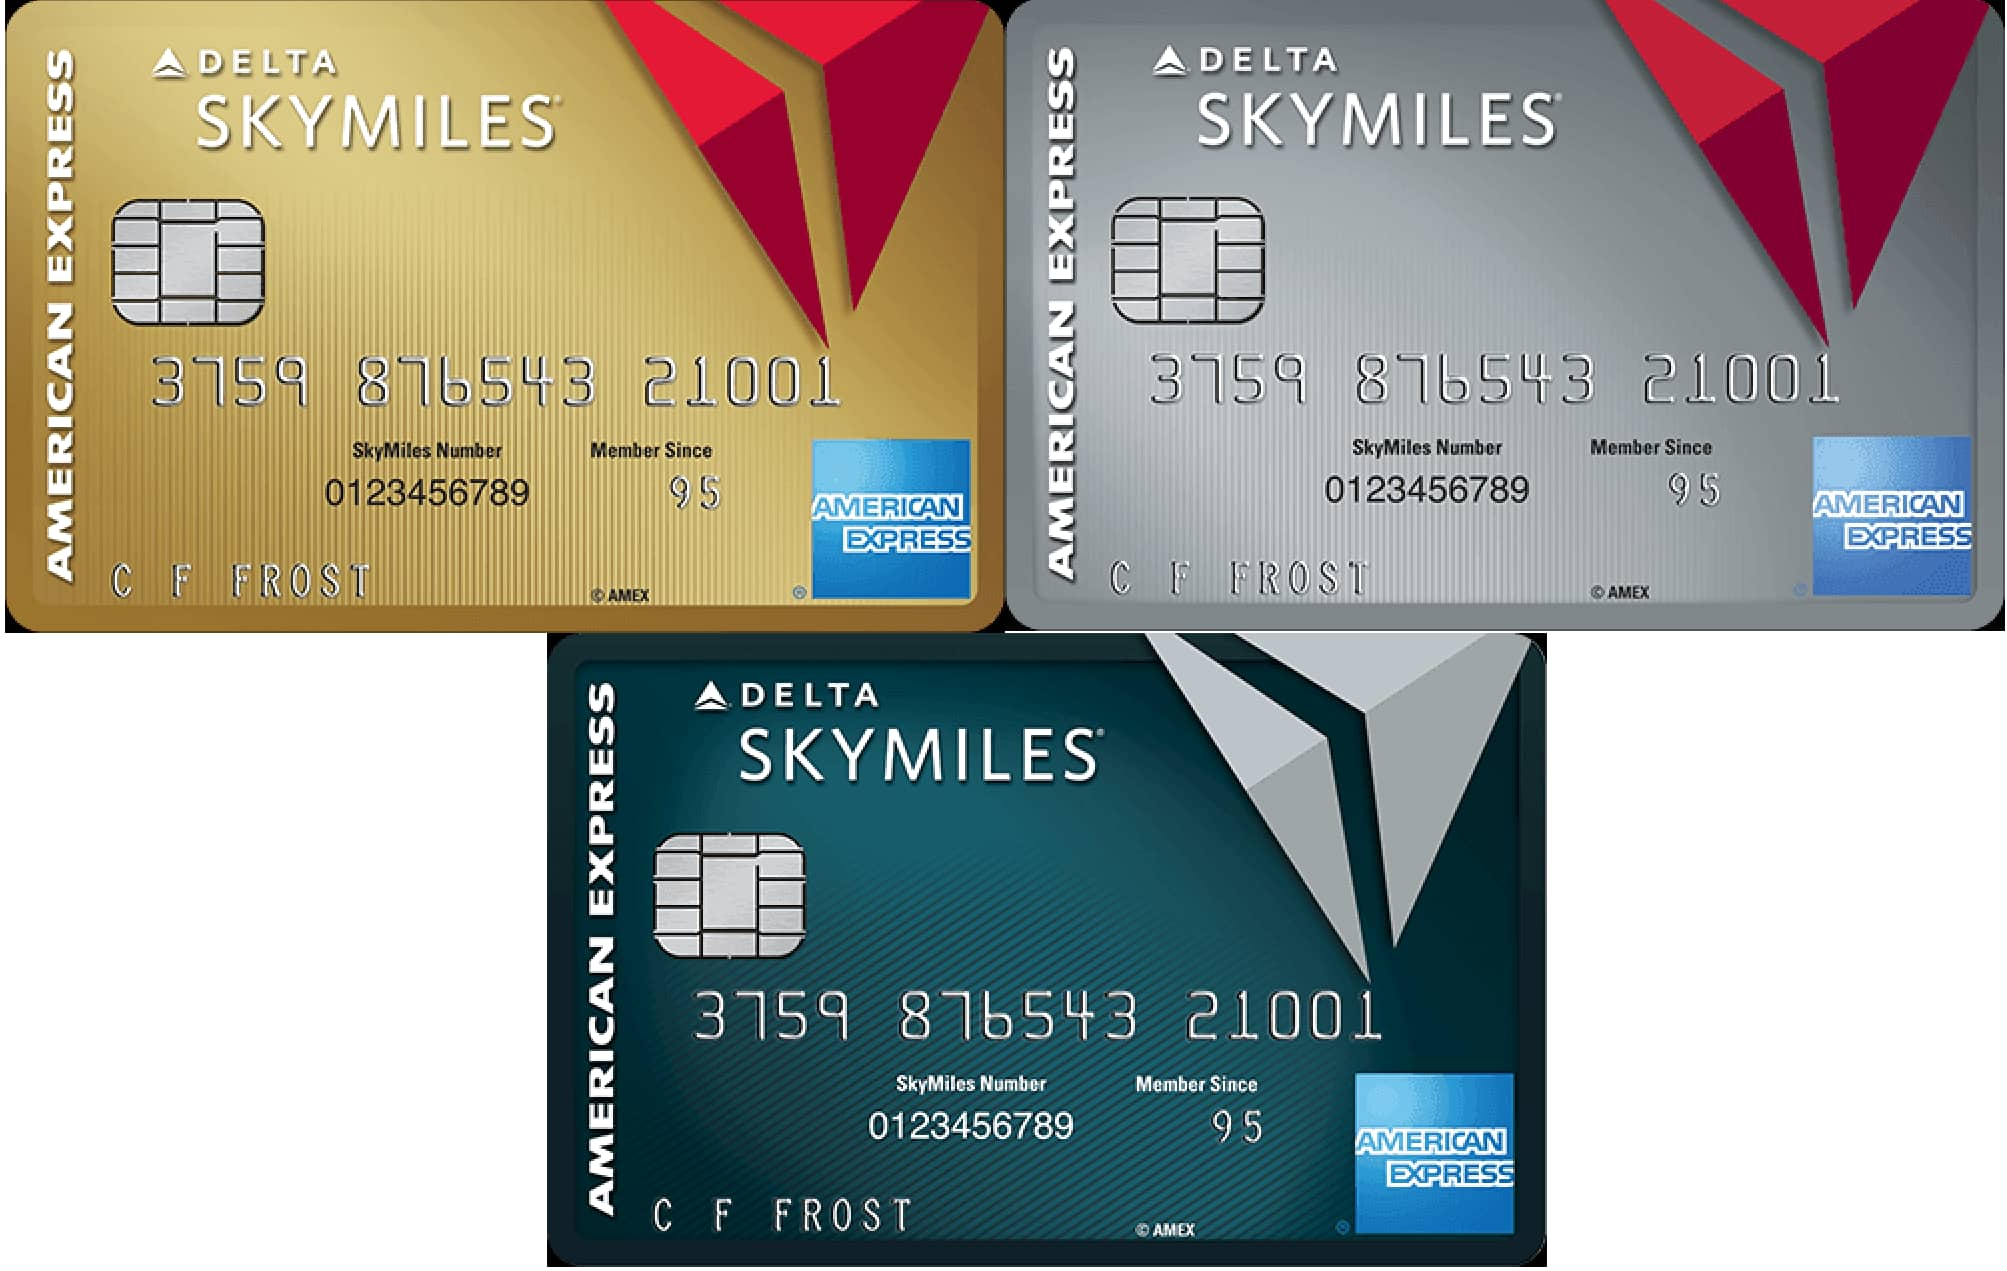 American Express Com Delta >> Gold Delta Skymiles Credit Card 60k Points W 2k Spend